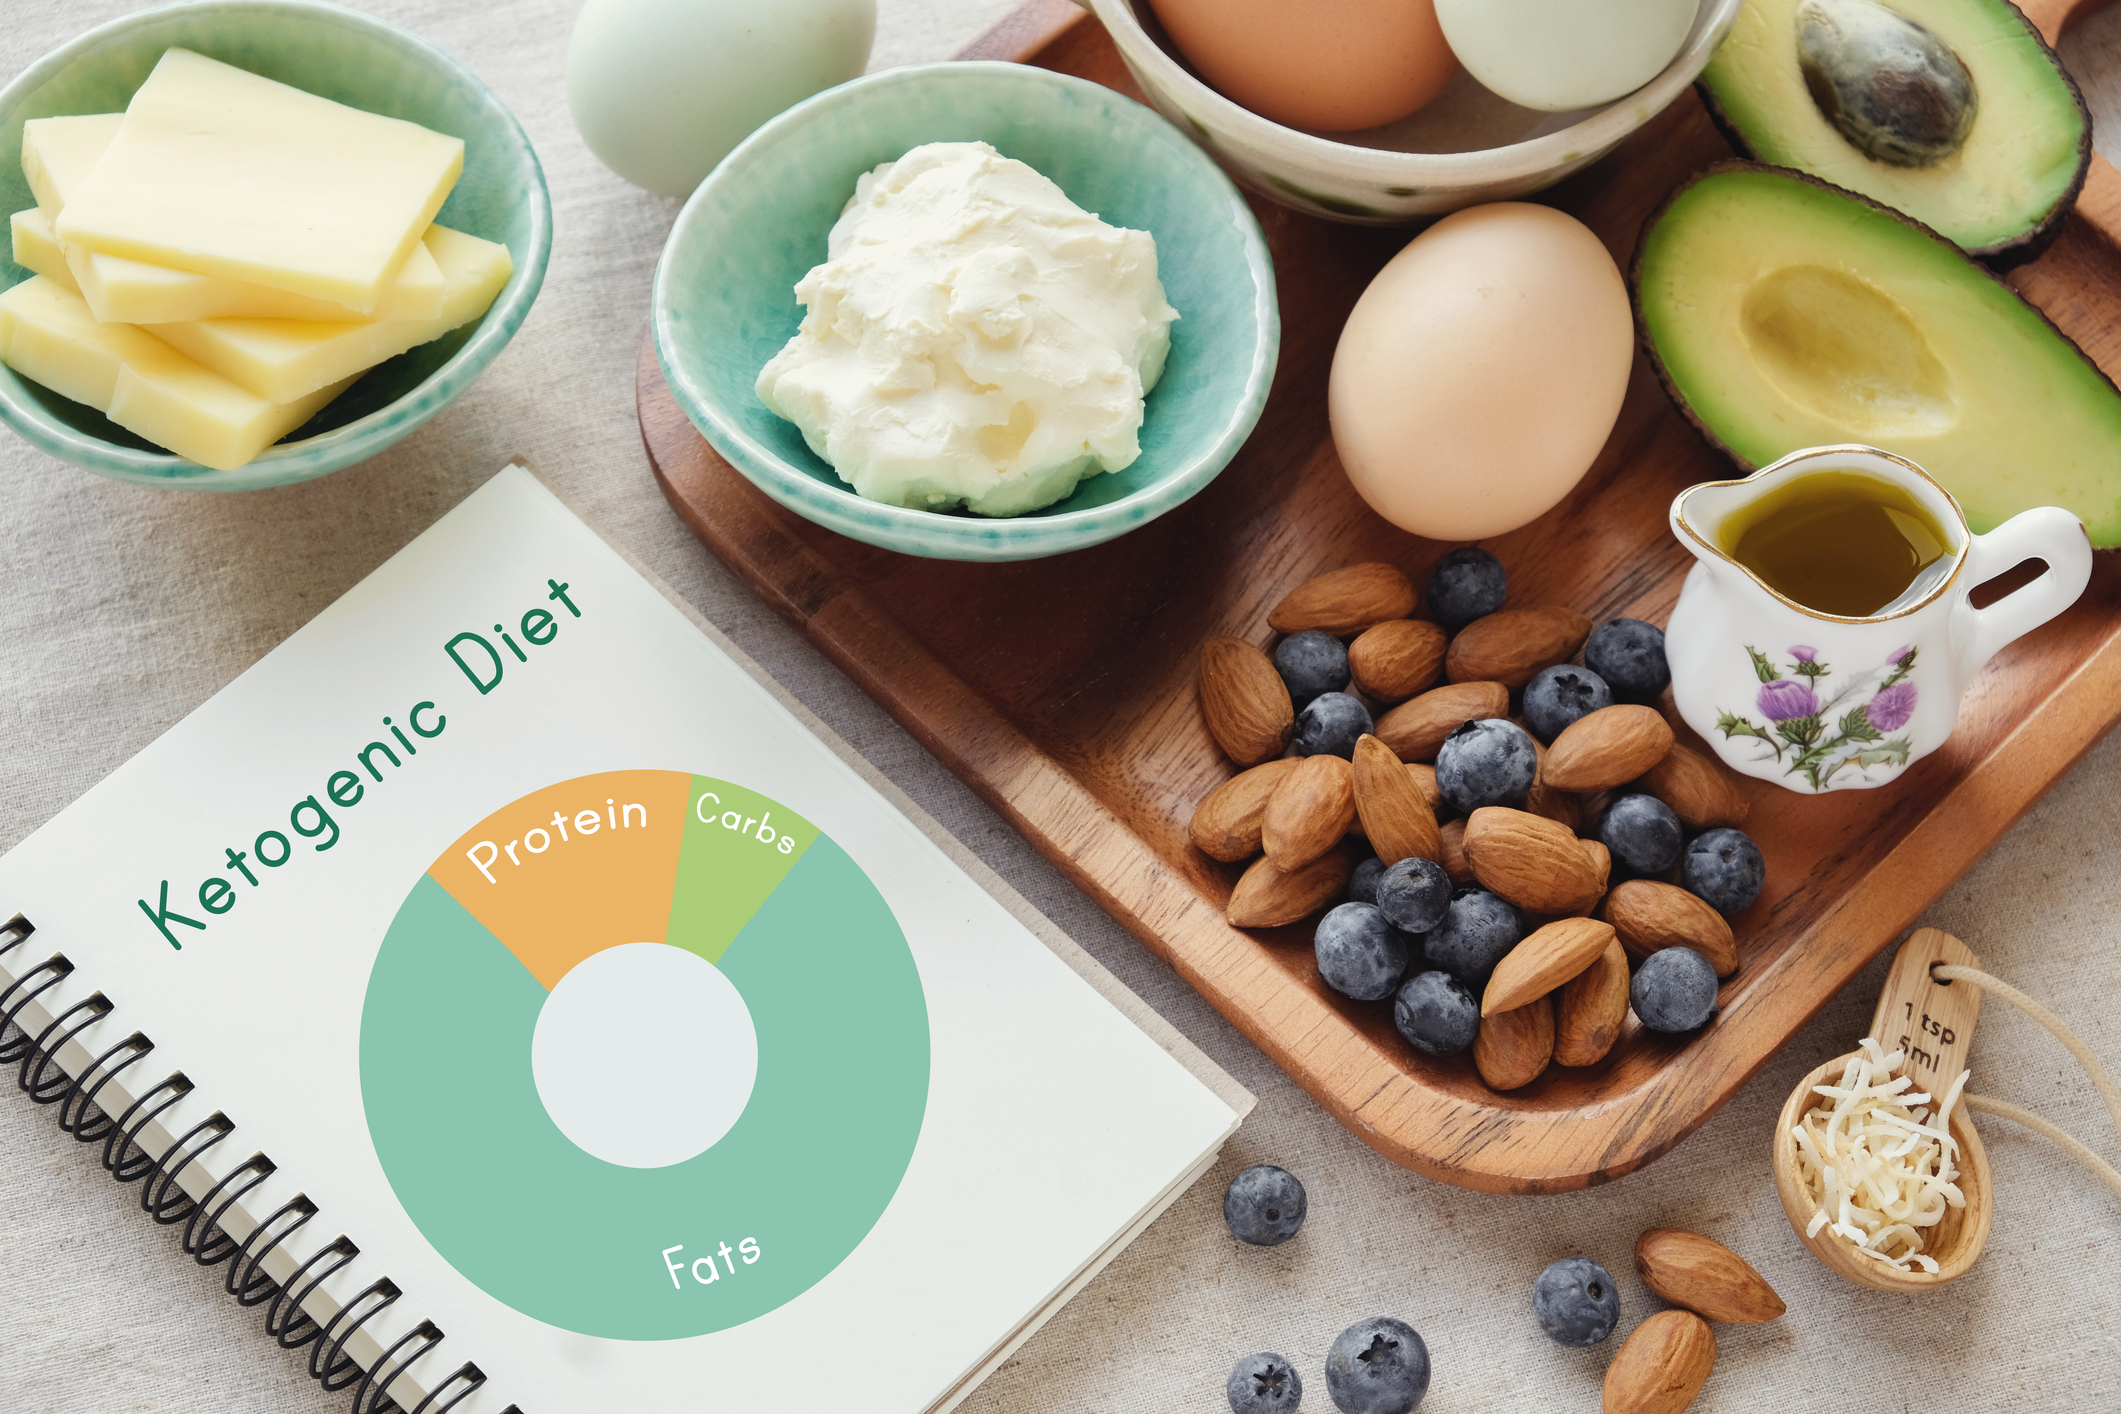 What is a ketogenic diet and how does carb intake relate to a ketogenic diet?